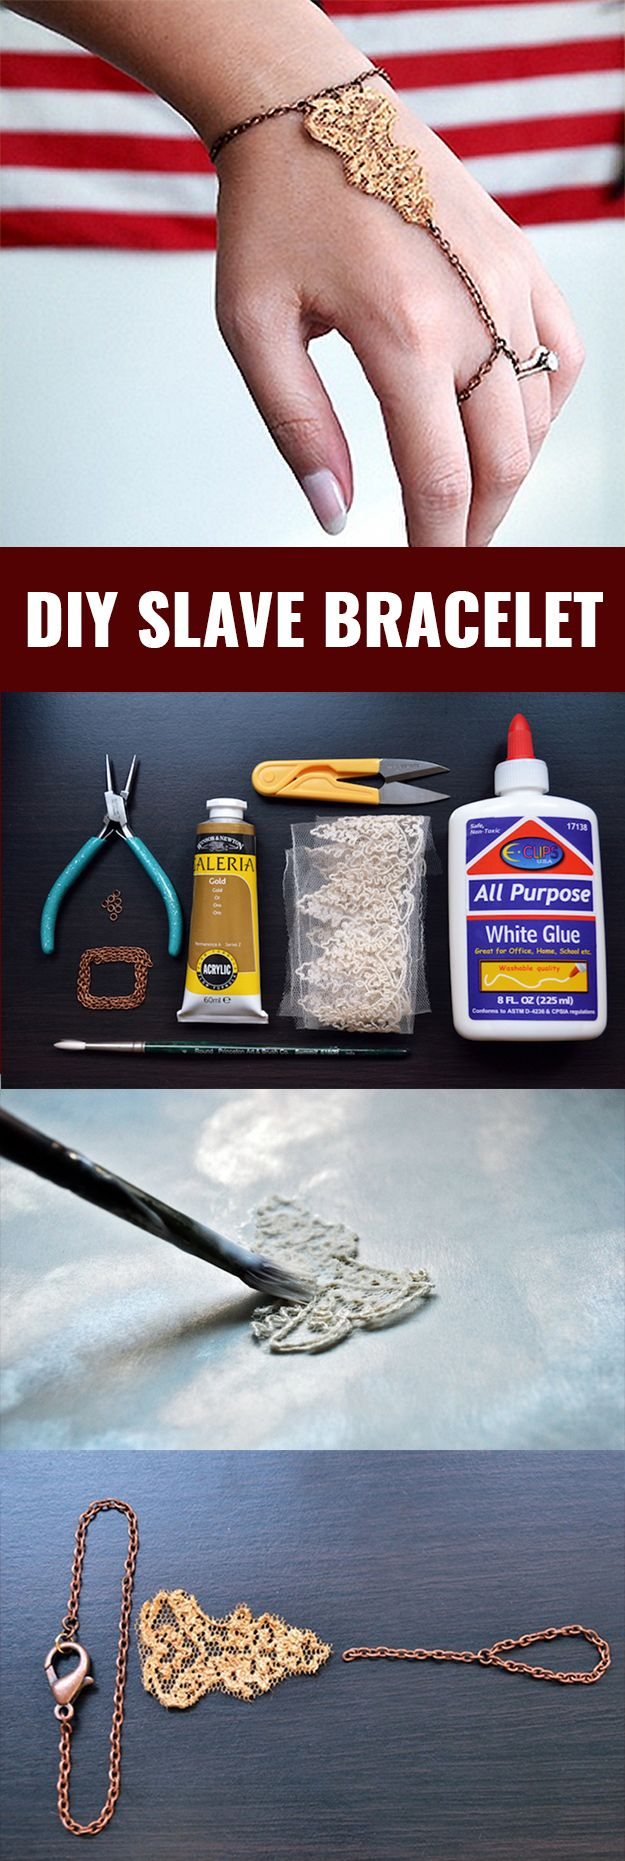 Fun DIY Jewelry Ideas | Cool Homemade Jewelry Tutorials for Adults and Teens | Awesome Bracelets, Necklaces, Earrings and Accessories You Can Make At Home | Golden Lace Slave Bracelet | http://diyprojectsforteens.com/fun-diy-jewelry-ideas-for-teens